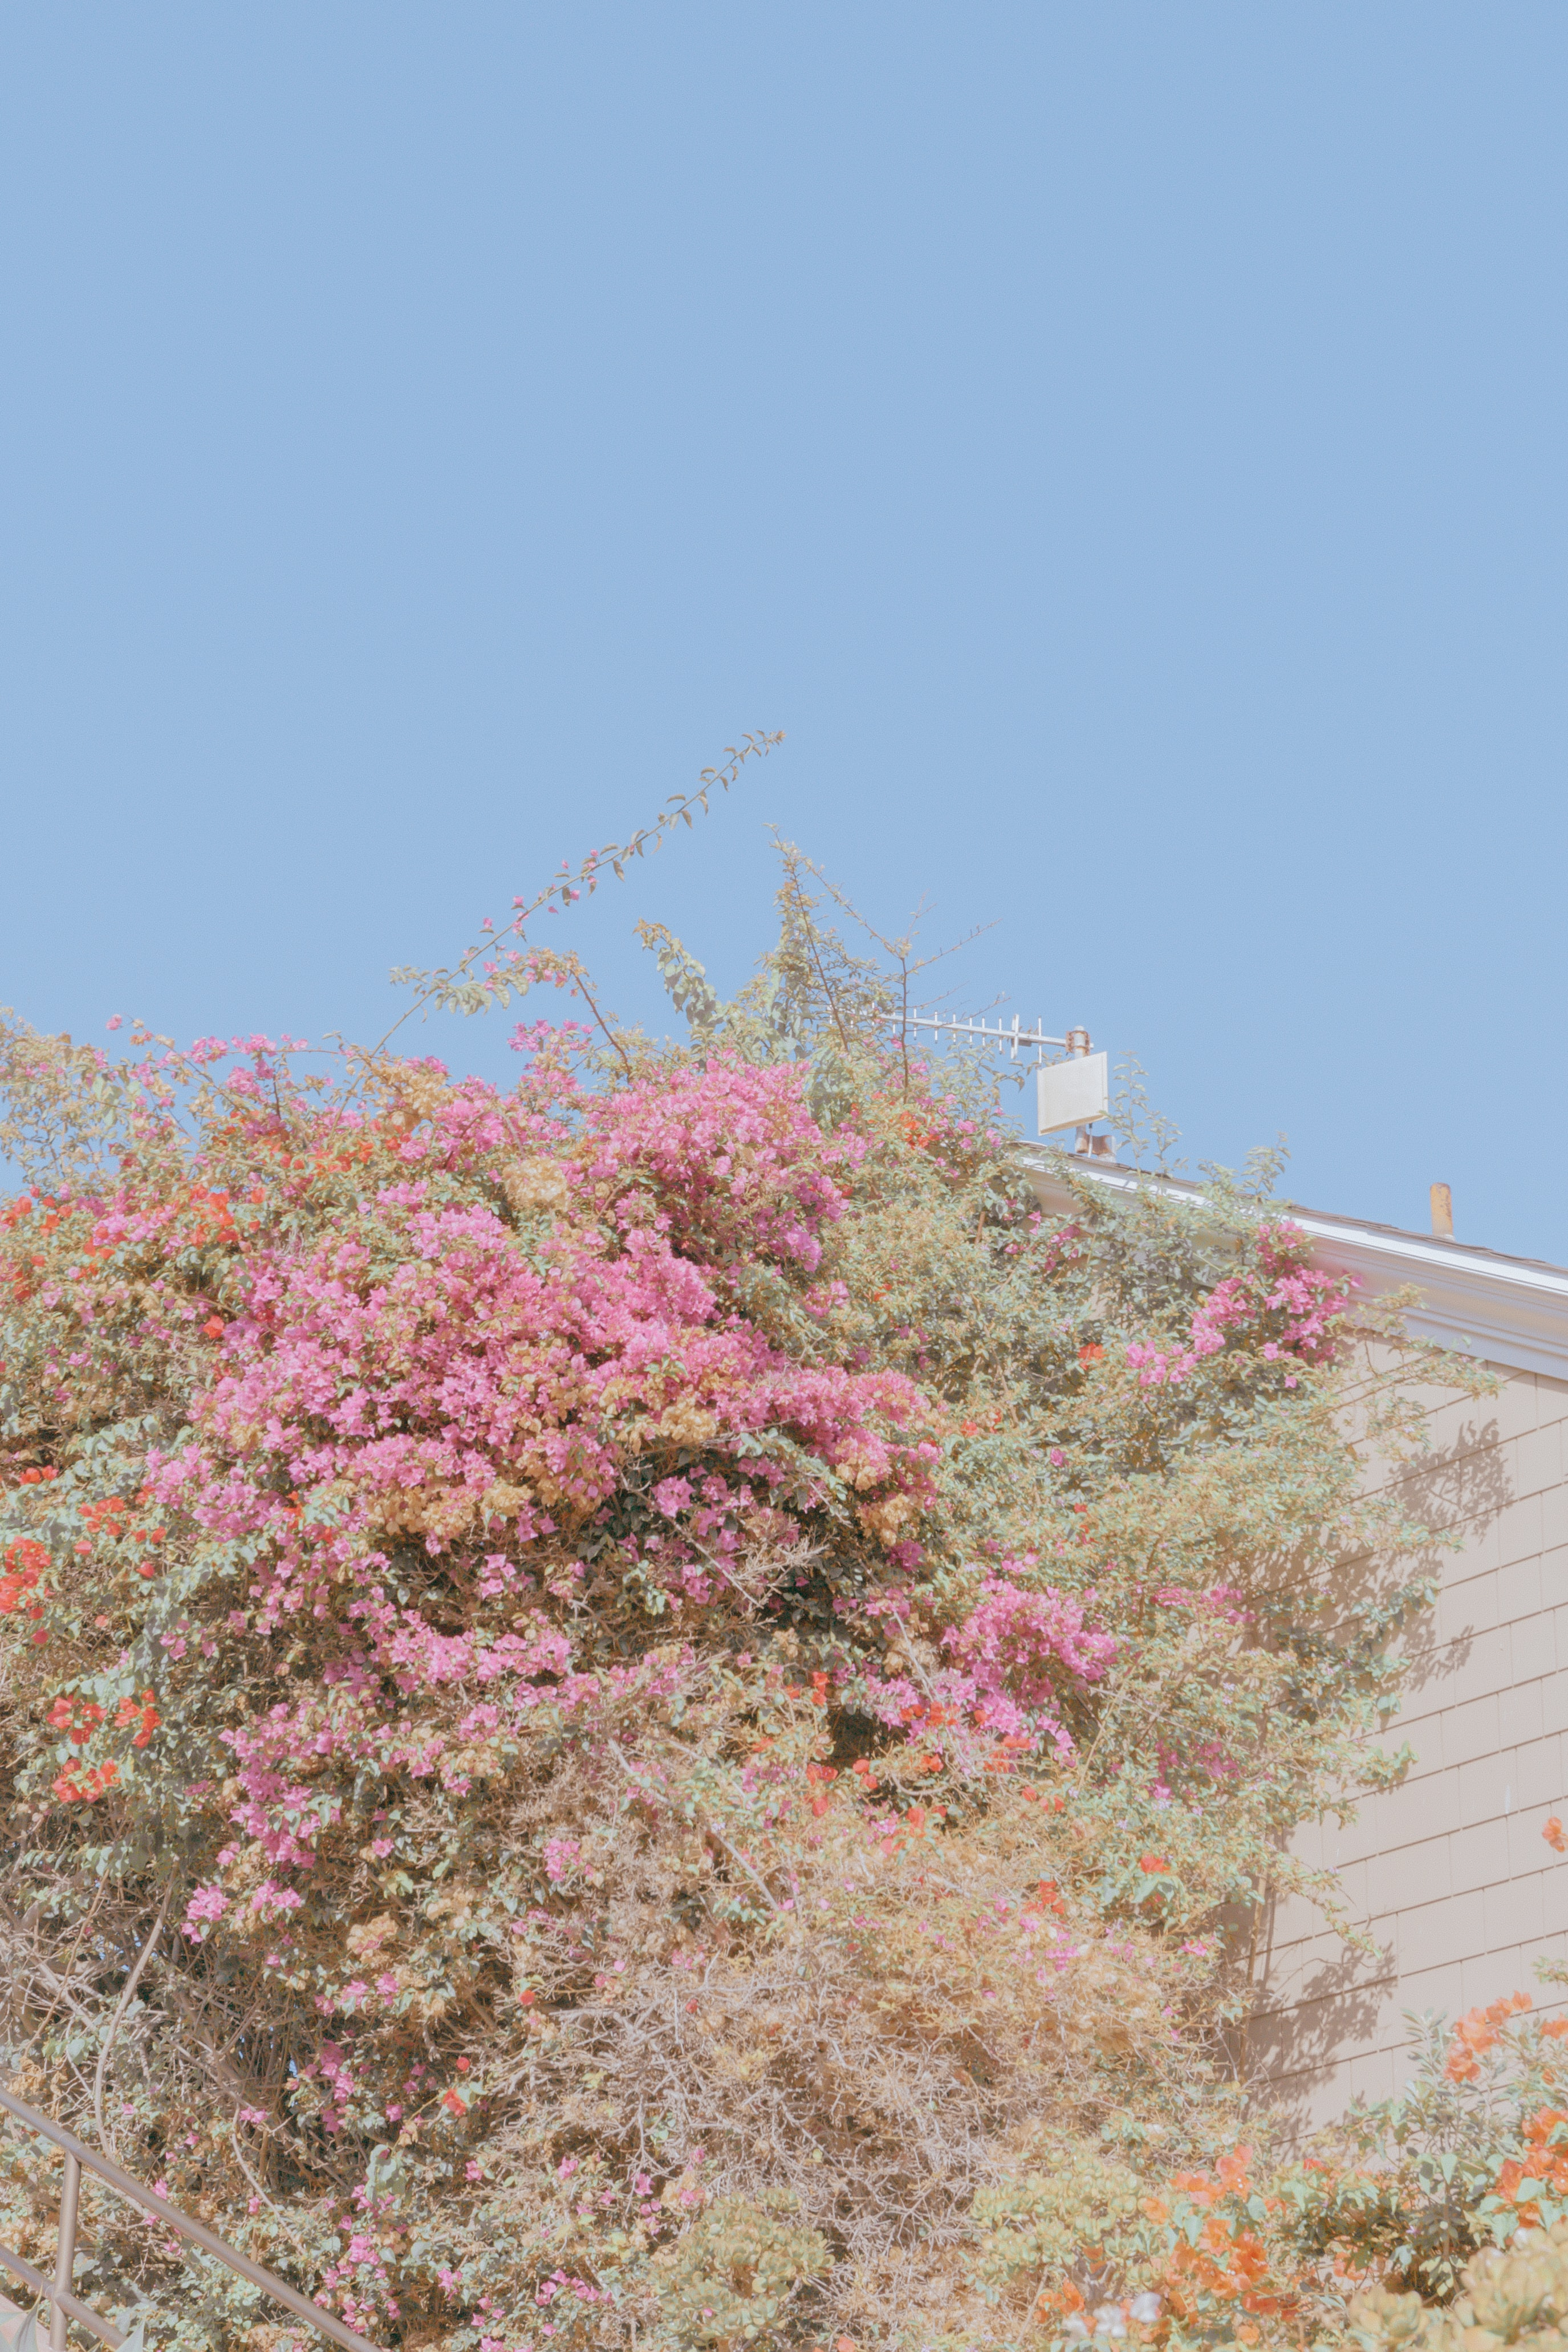 pink bougainvillea flowers in bloom during daytime